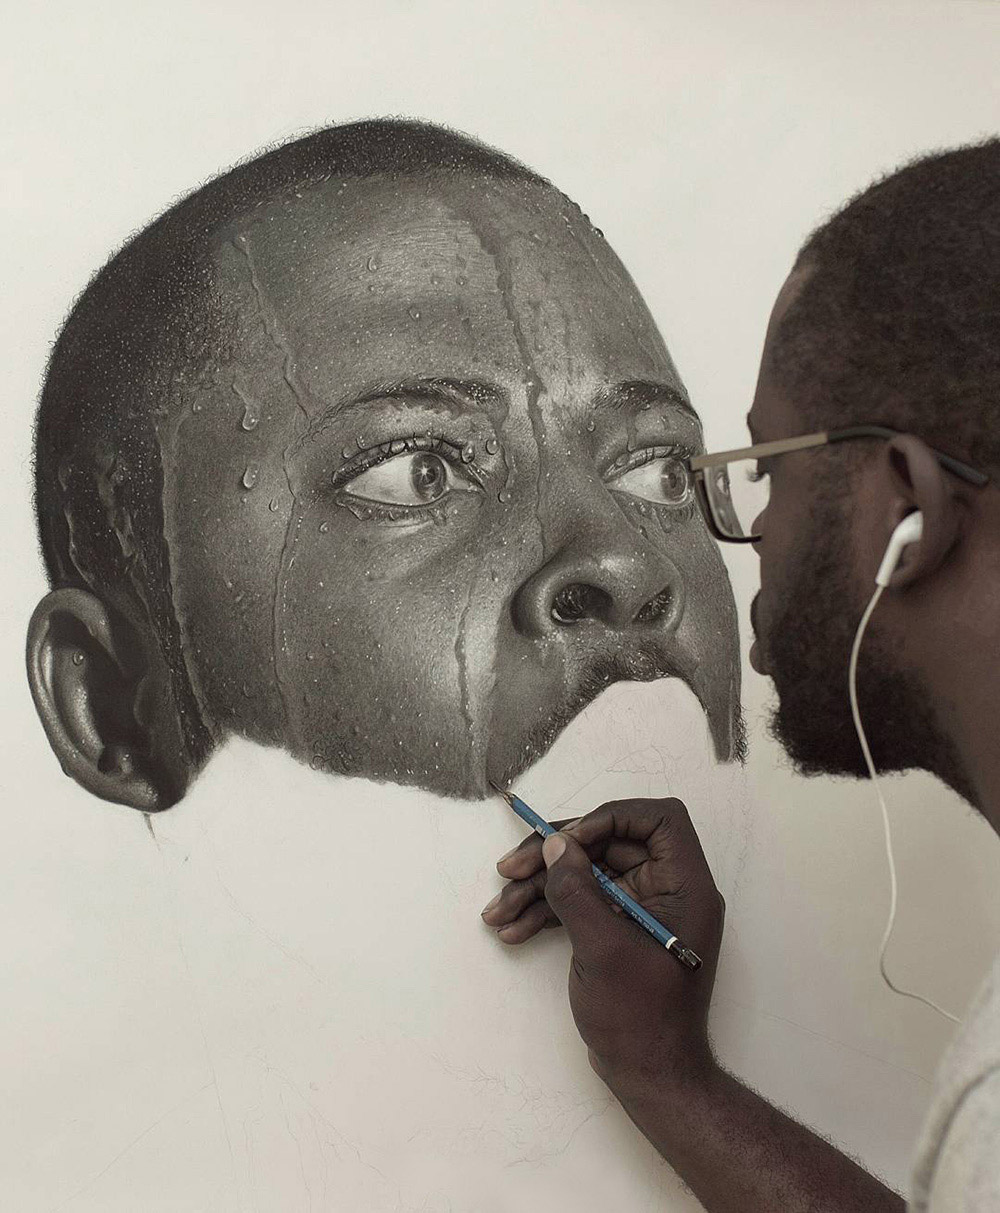 Hyper-Realistic Pencil Drawings by Arinze Stanley (14 pics)